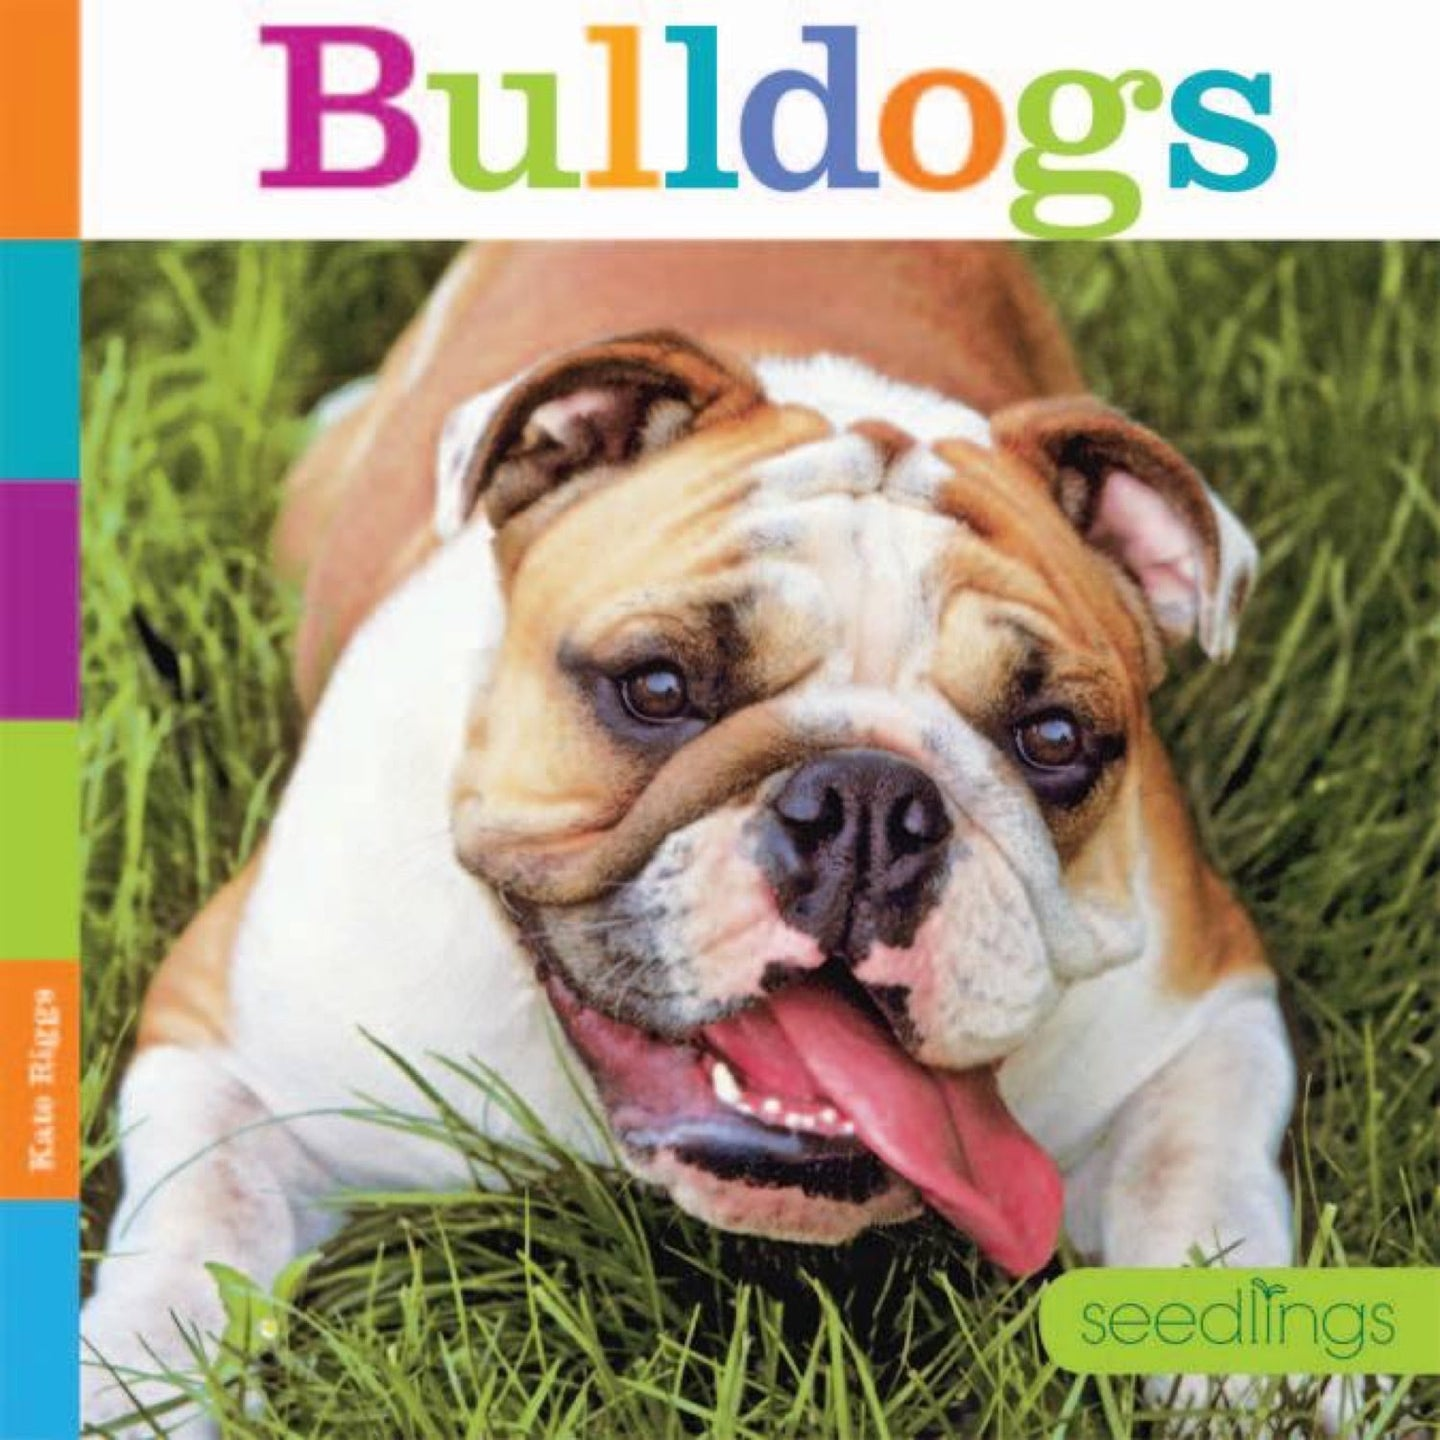 Seedlings: Bulldogs